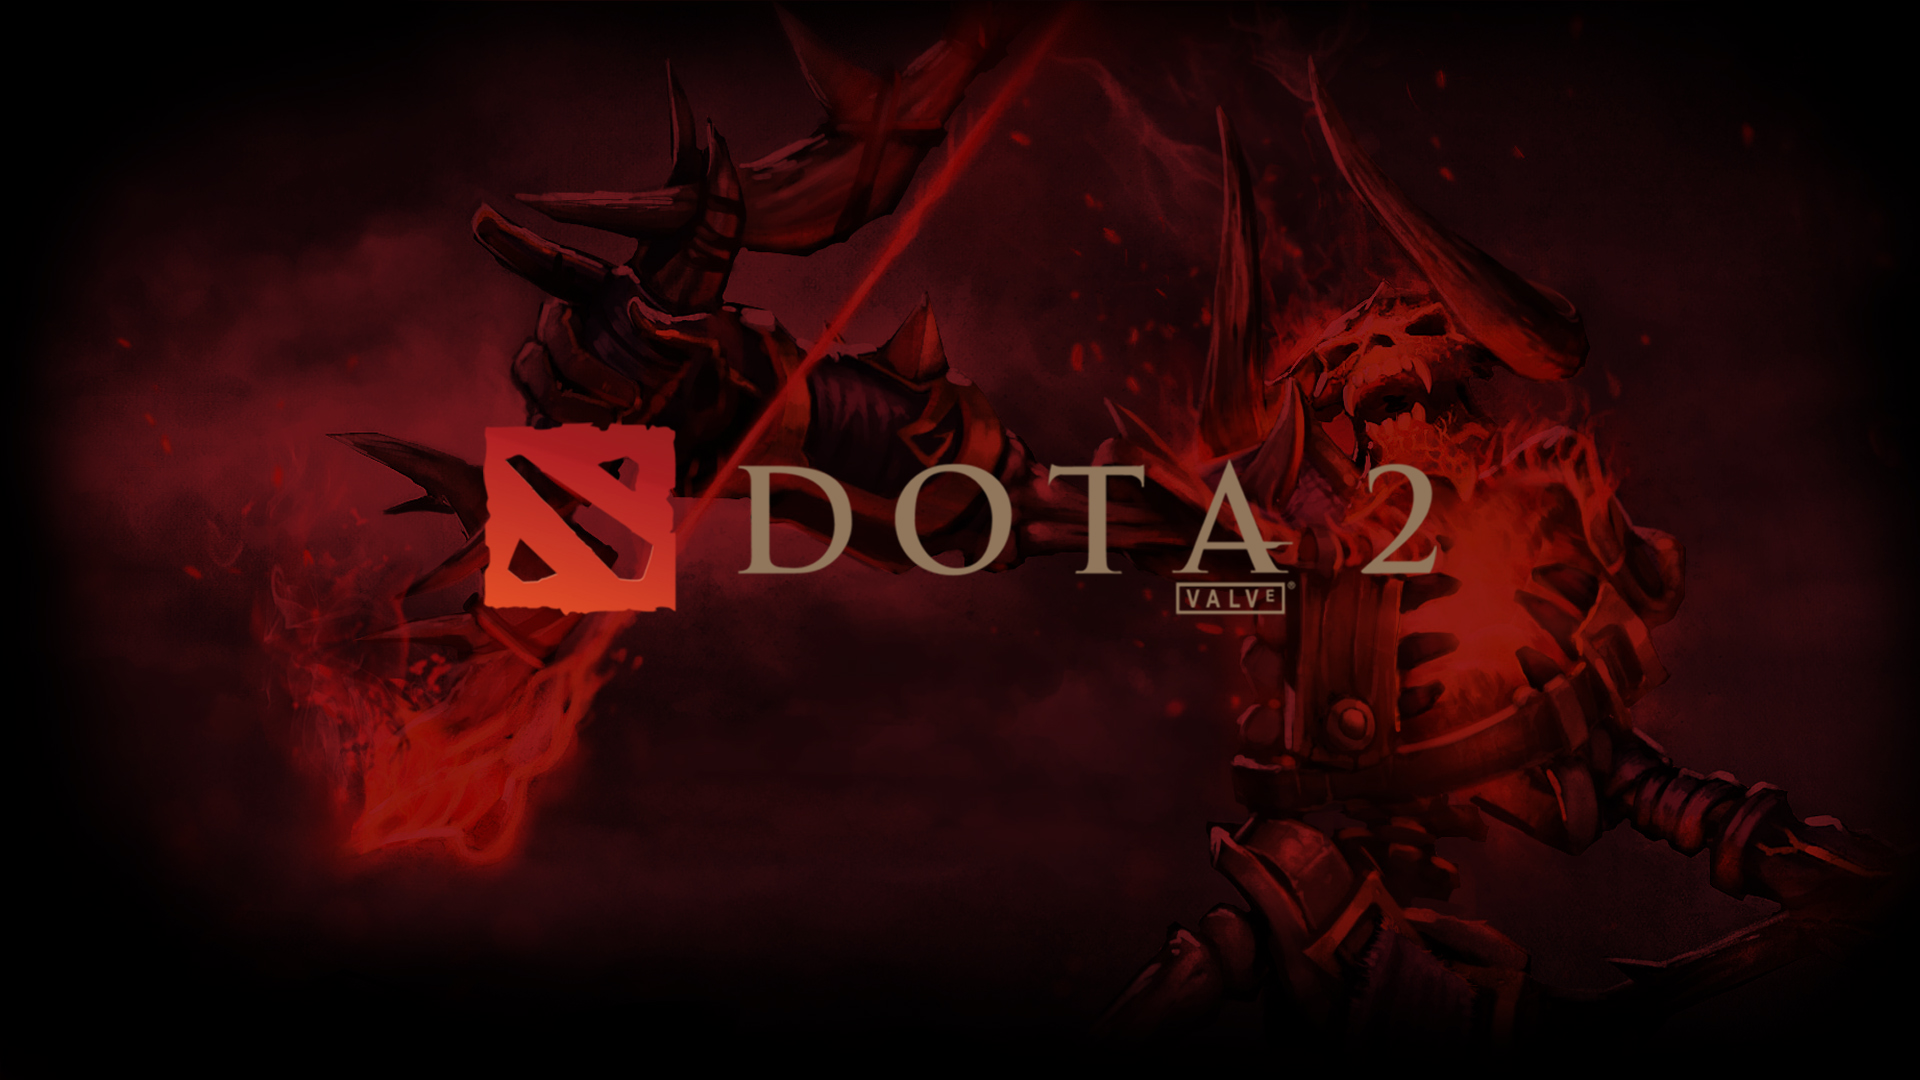 wallpapersdota2.com 266